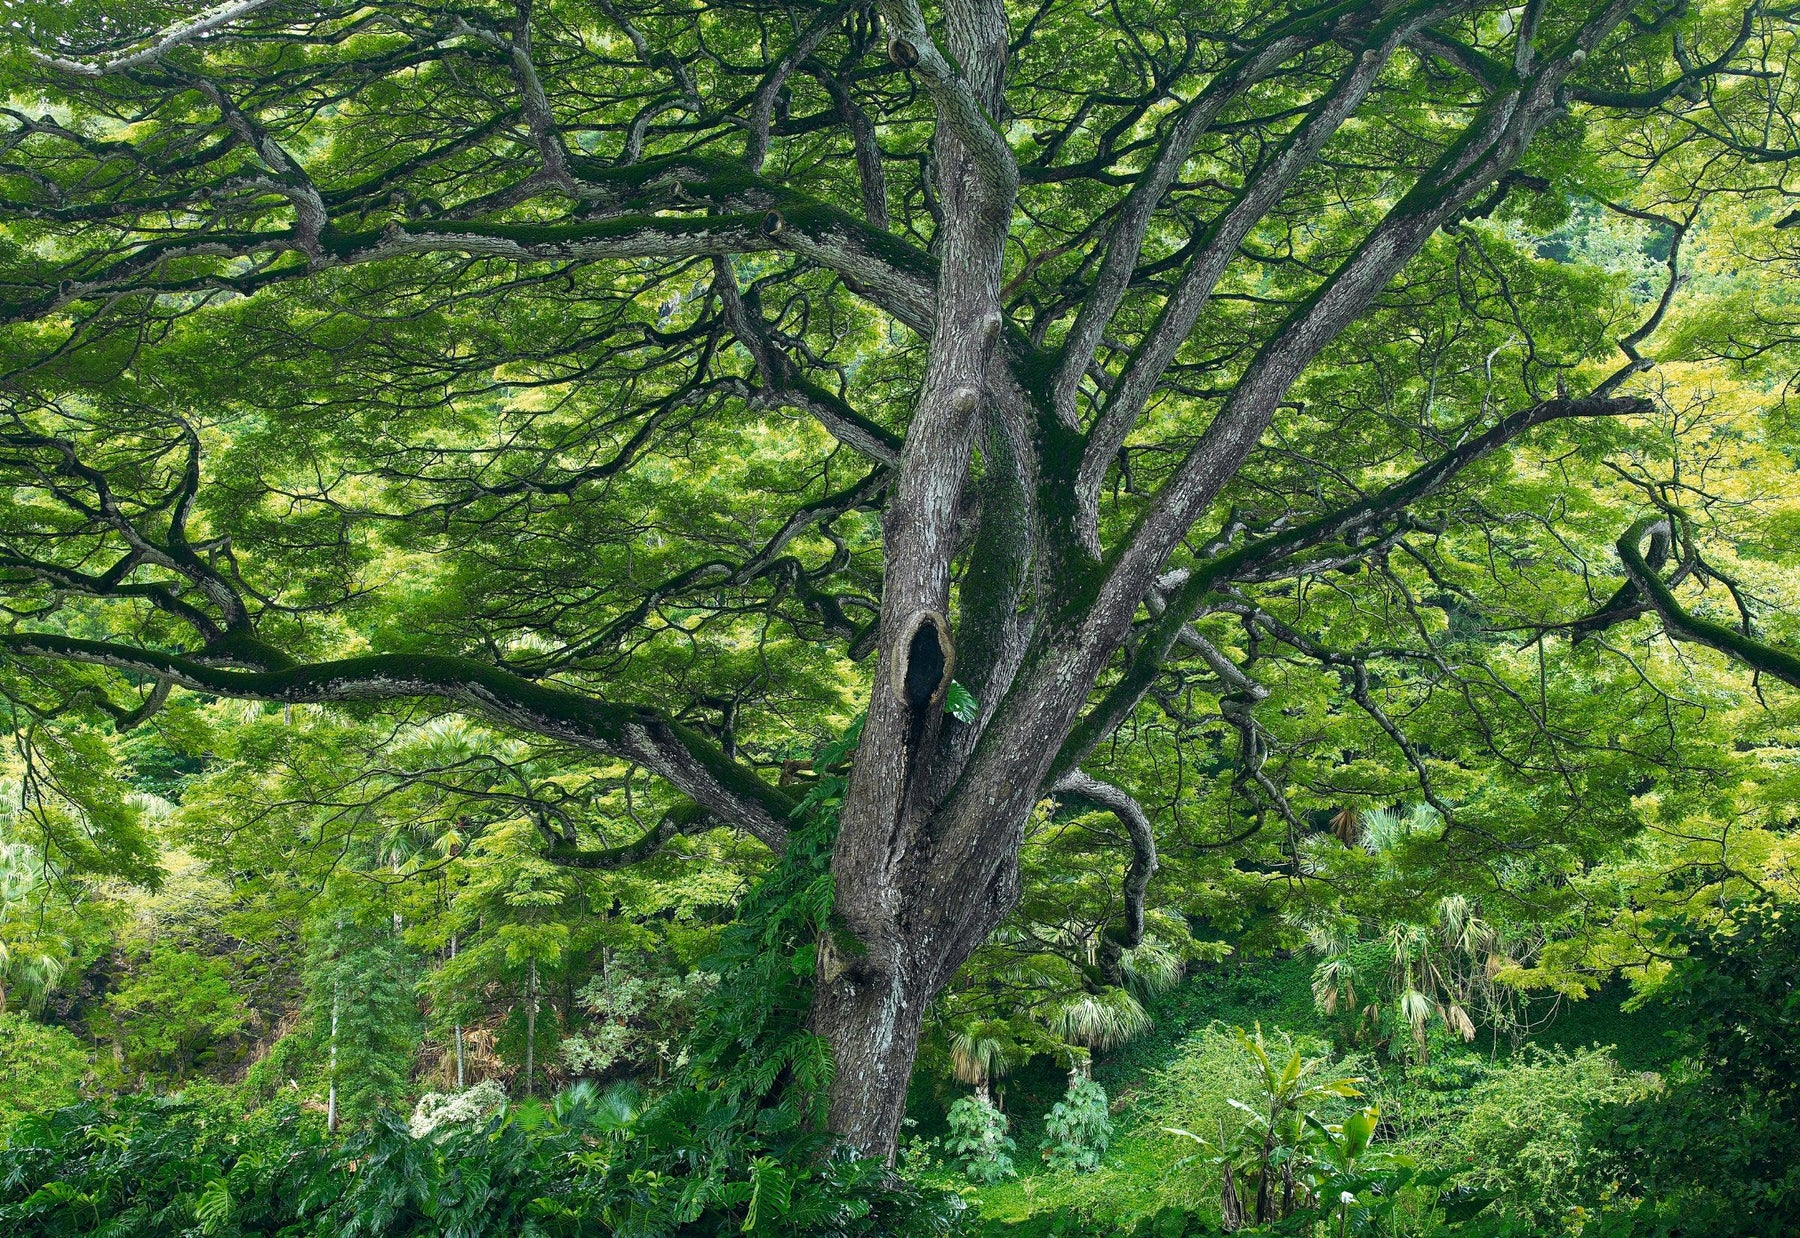 Moss covered tree with branches and green leaves filling the canopy above in Hawaii